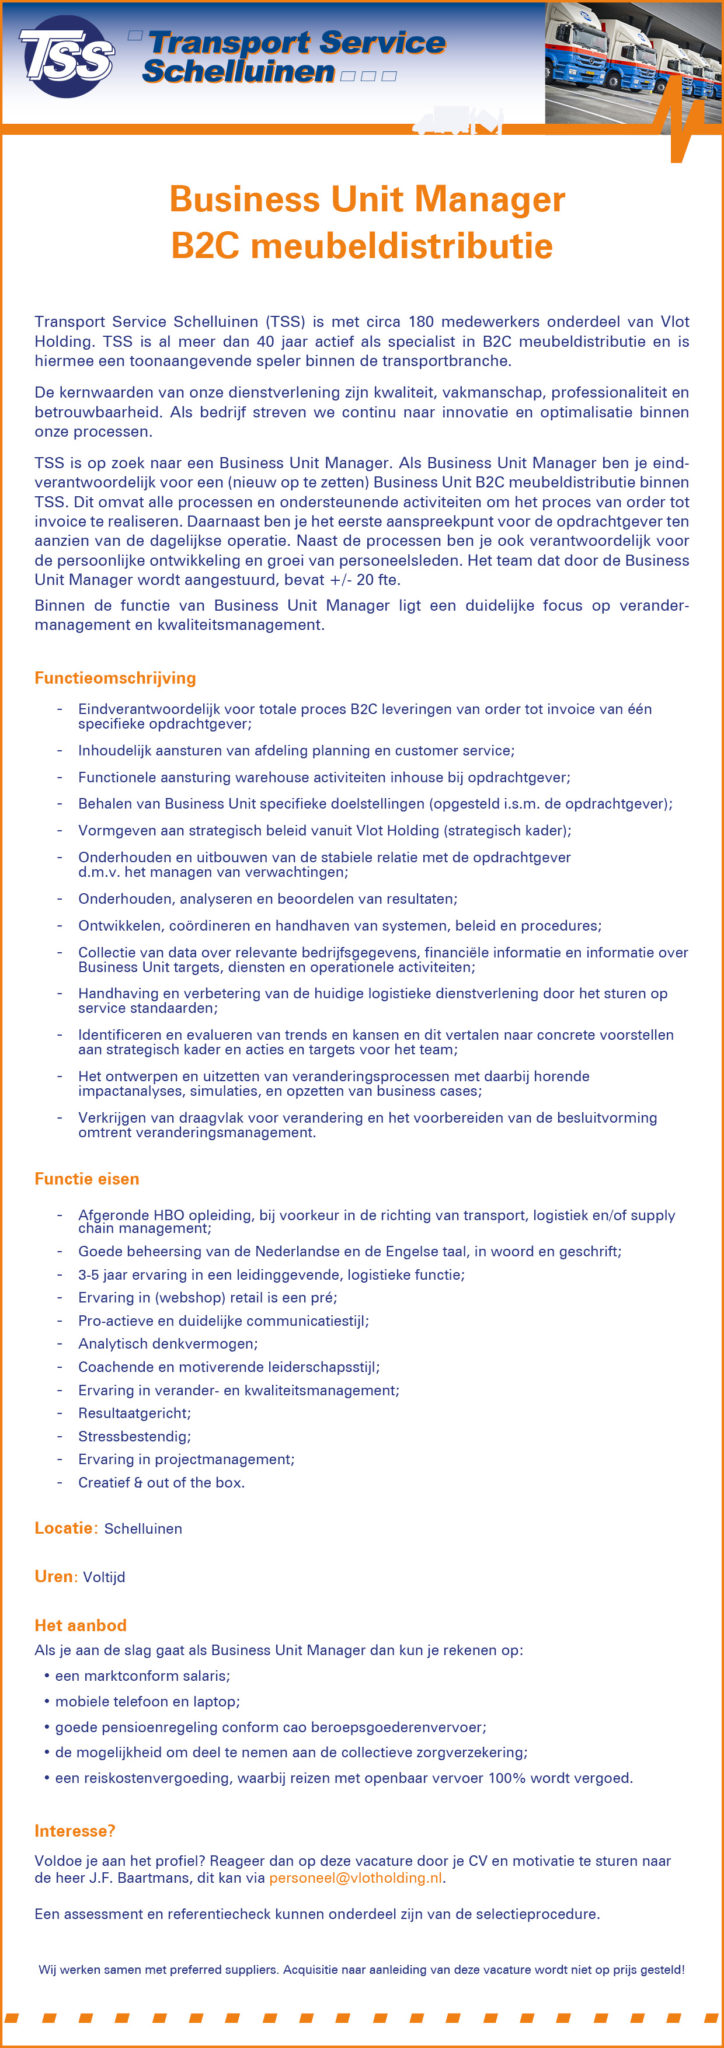 business unit manager, advertentie, vlot, tss, mondial movers